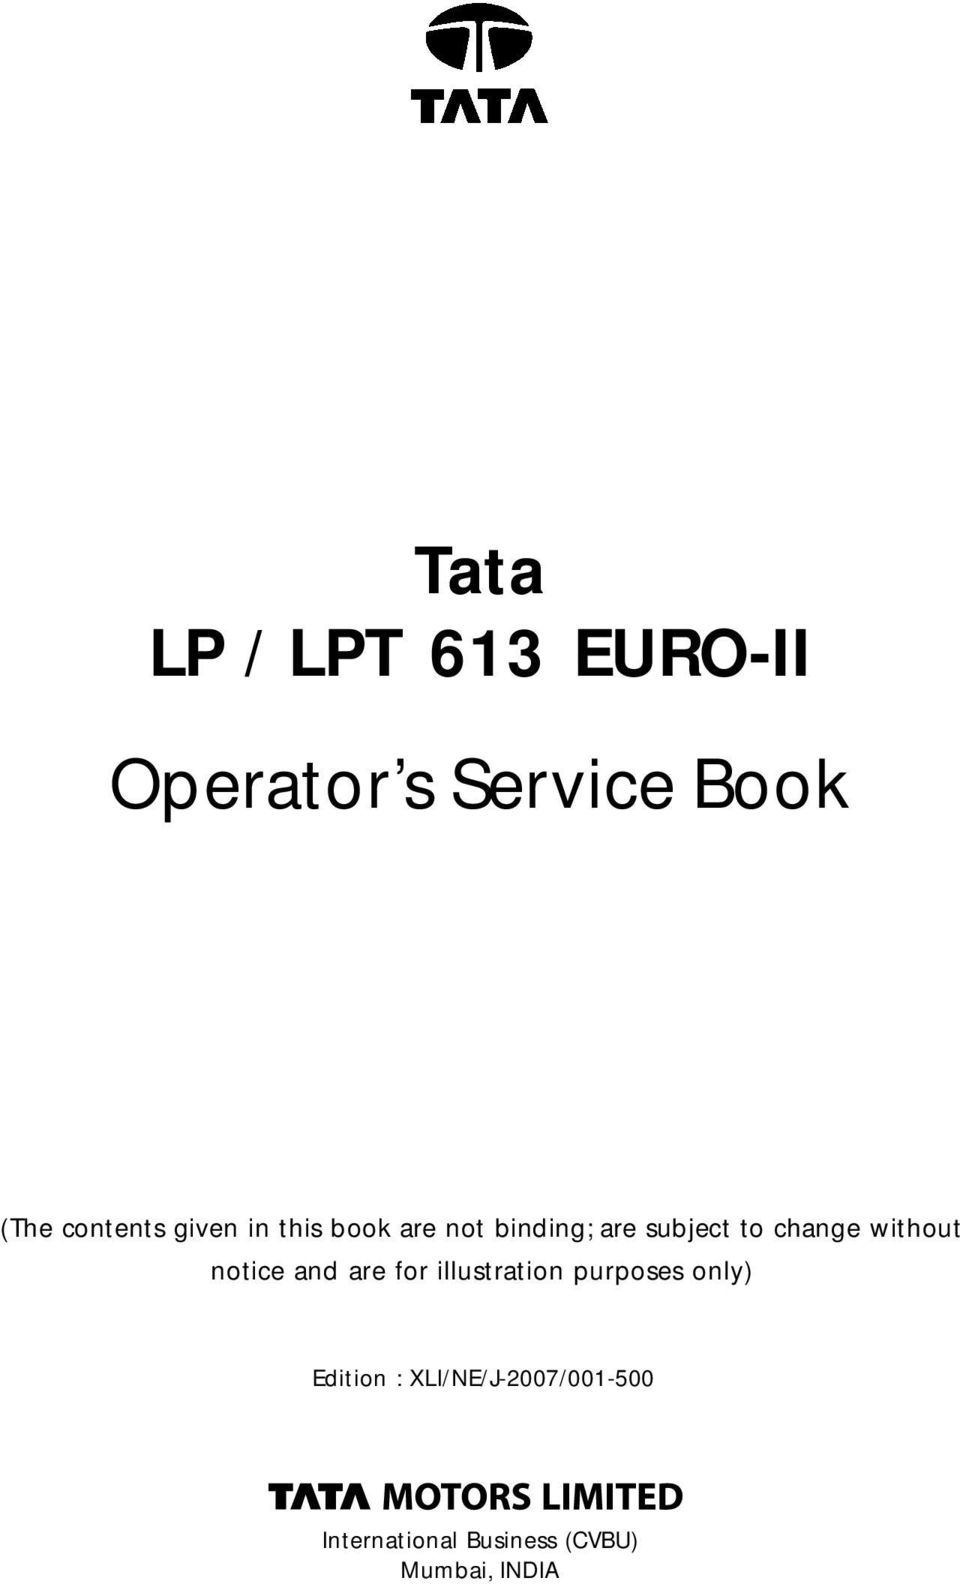 Tata 50 Cc Scooter Wiring Diagram Operator S Service Book Pdf Change Without Notice And Are For Illustration Purposes Only